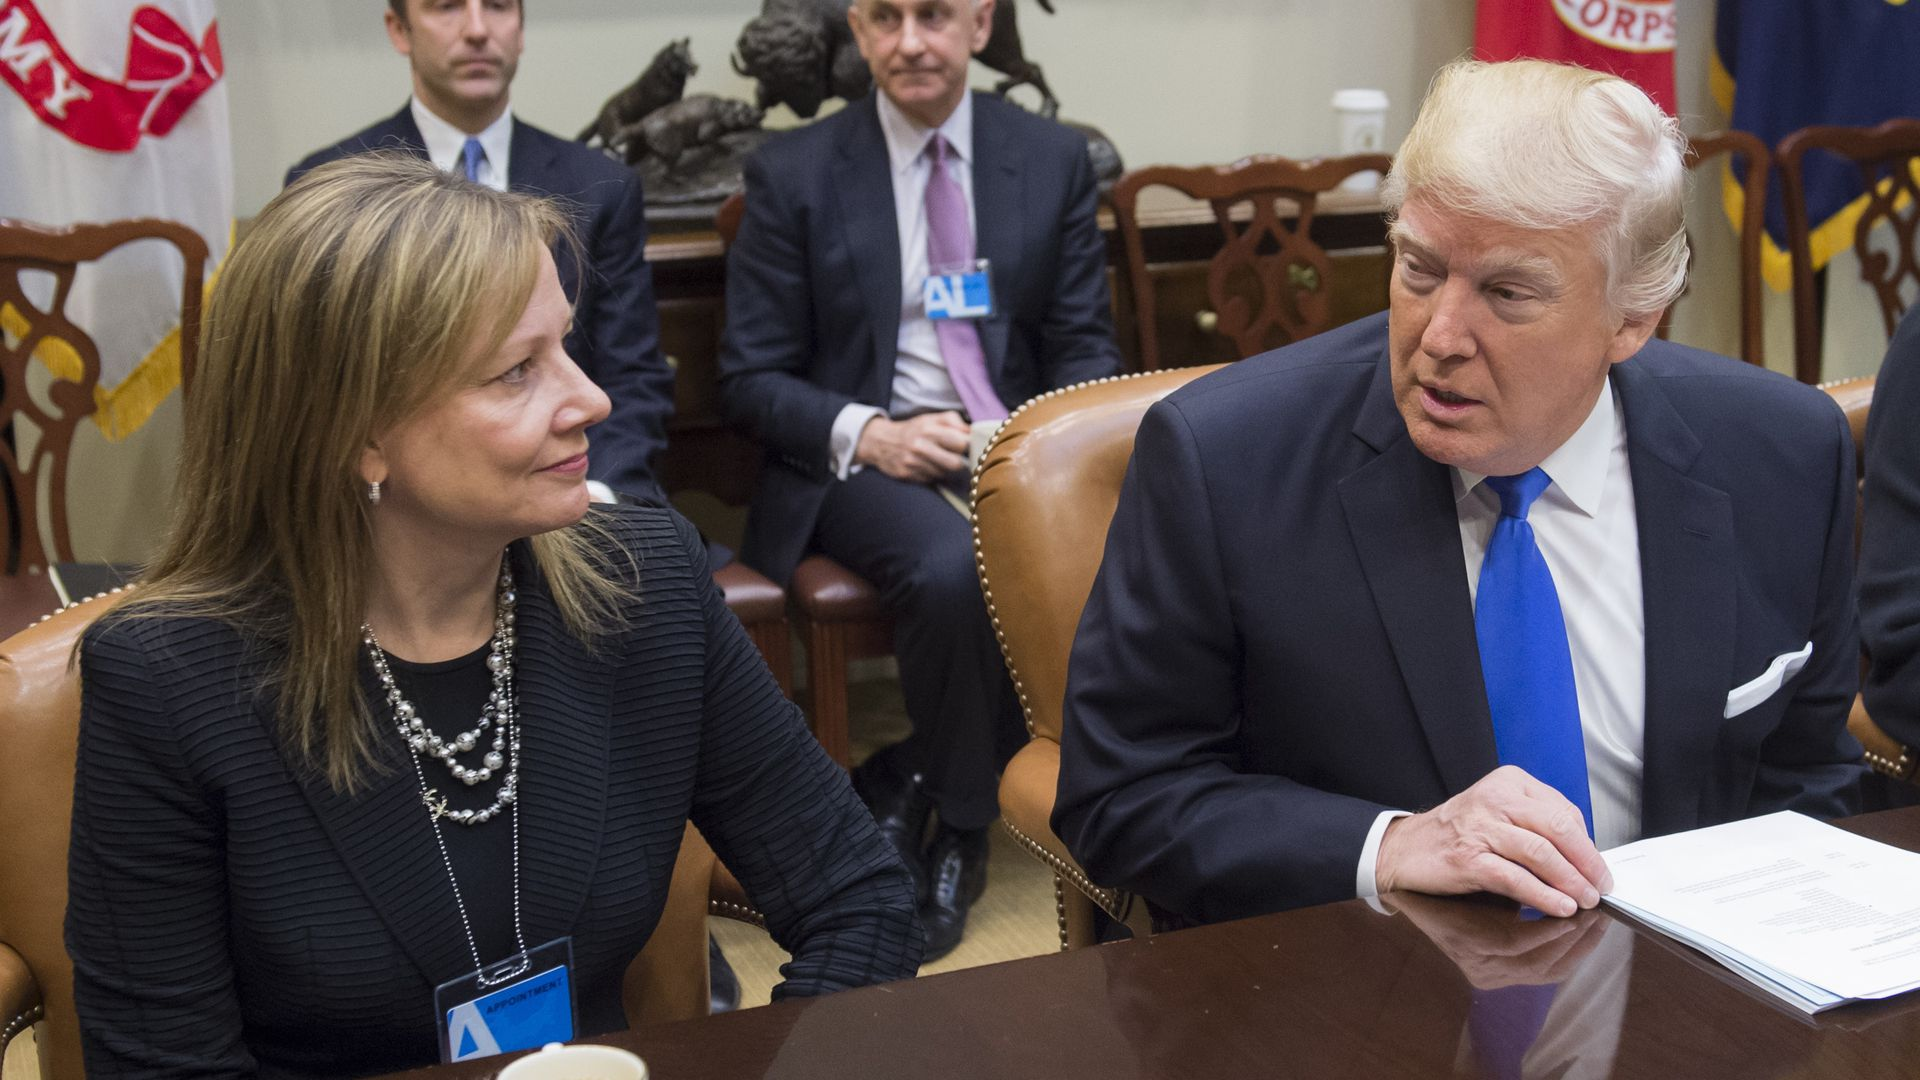 US President Donald Trump speaks with General Motors CEO Mary Barra during a meeting with automobile industry leaders in the Roosevelt Room of the White House in Washington, DC, January 24, 2017.